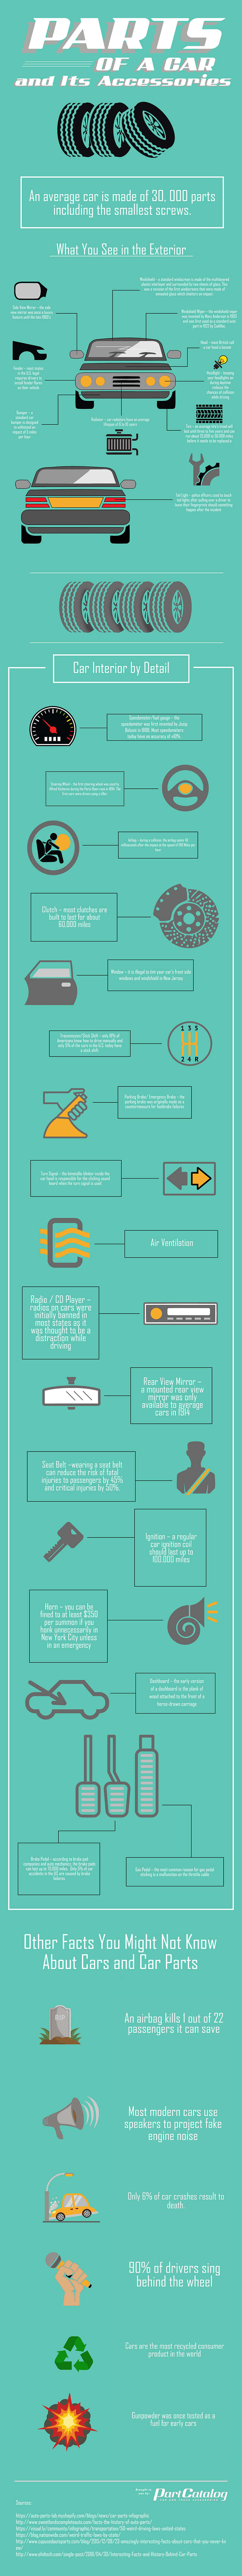 How Well Do You Know Your Car? Concise Guide to Parts of a Car - Infographic